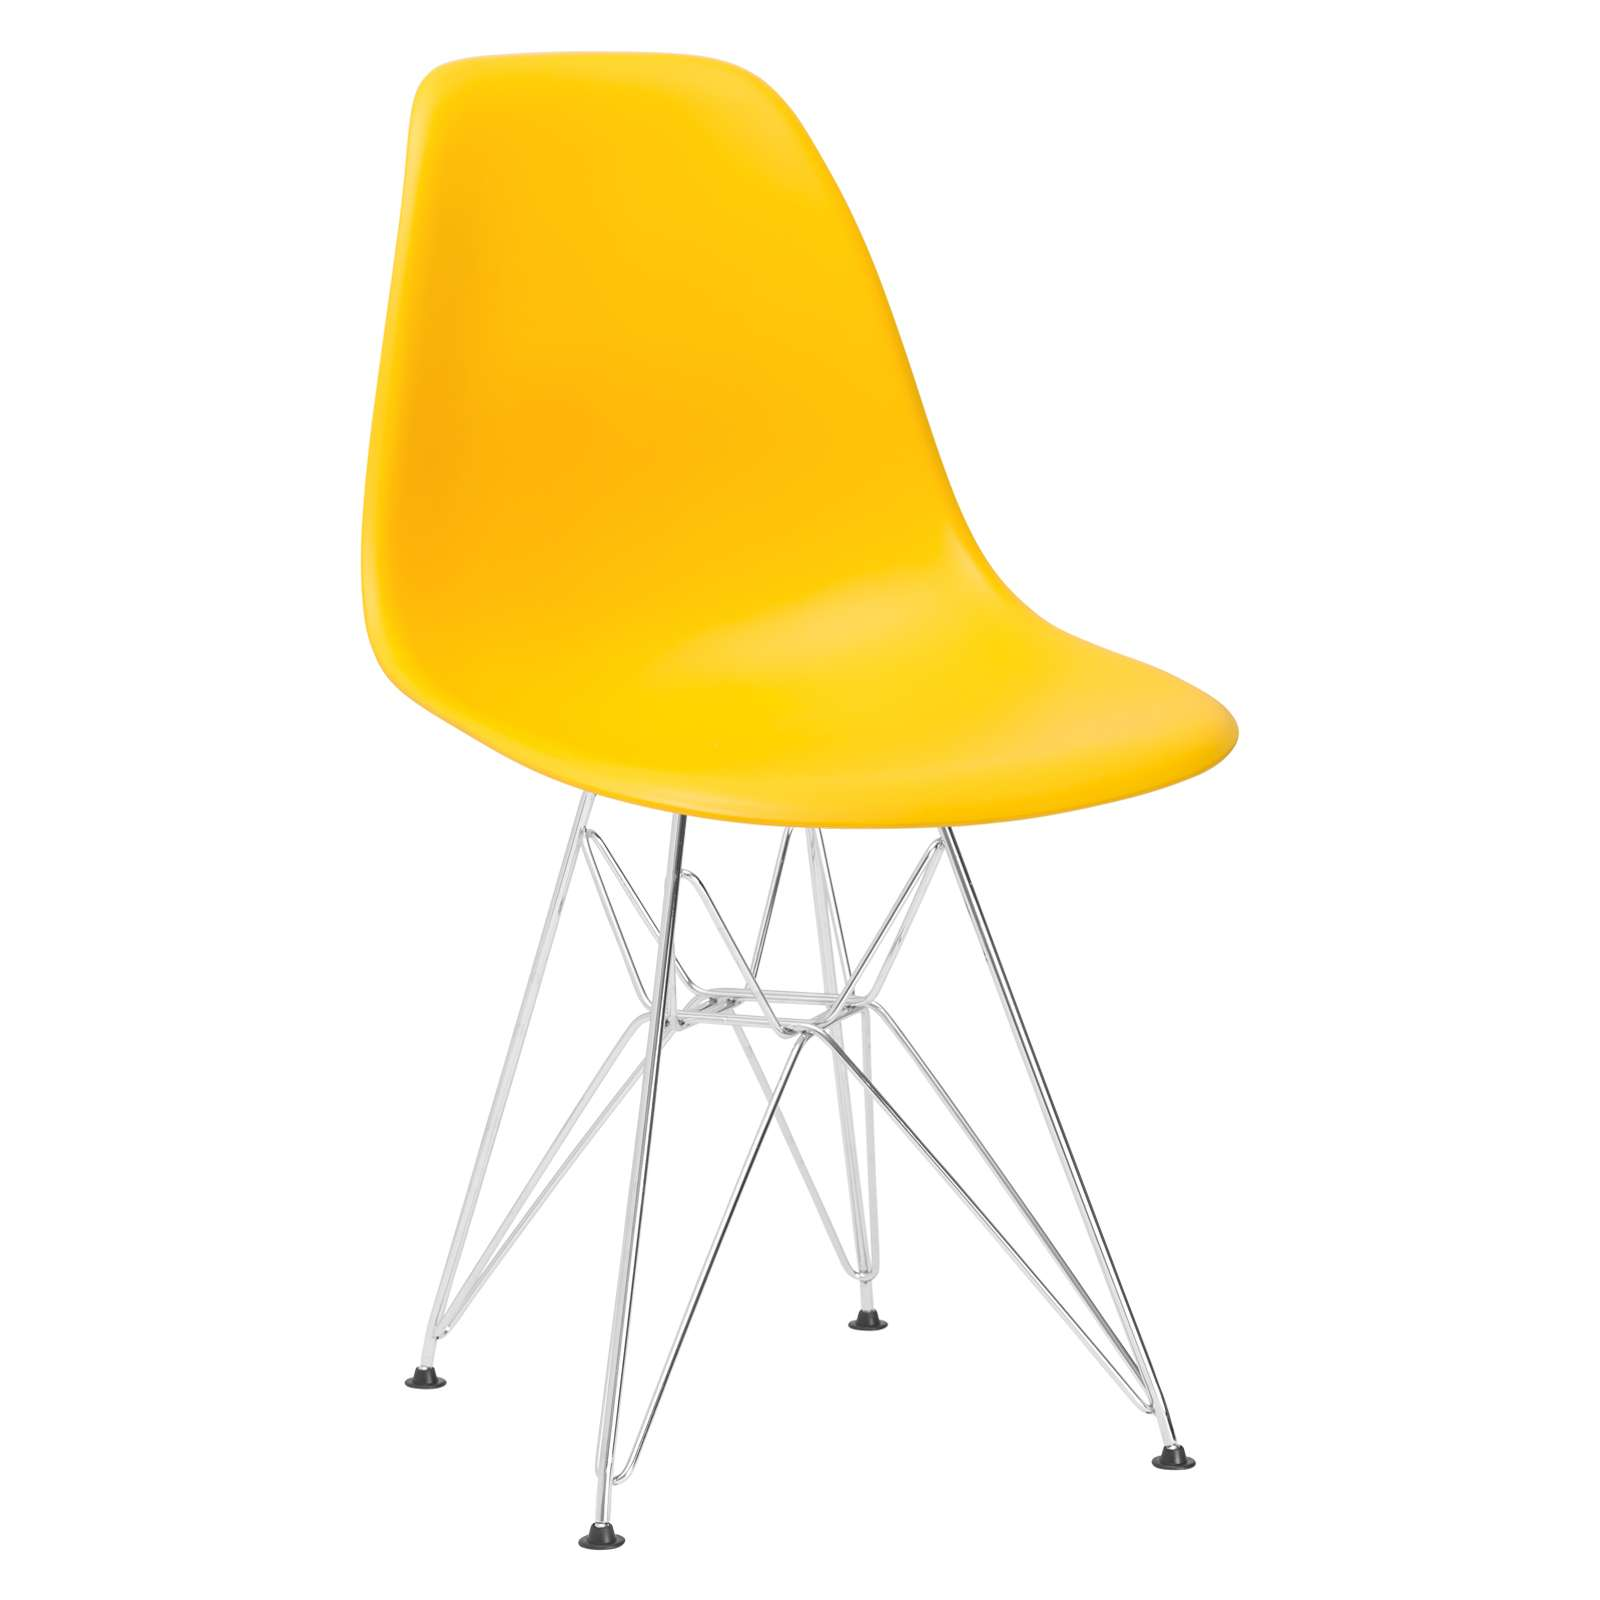 Padget Side Chair in Yellow - Set of 2